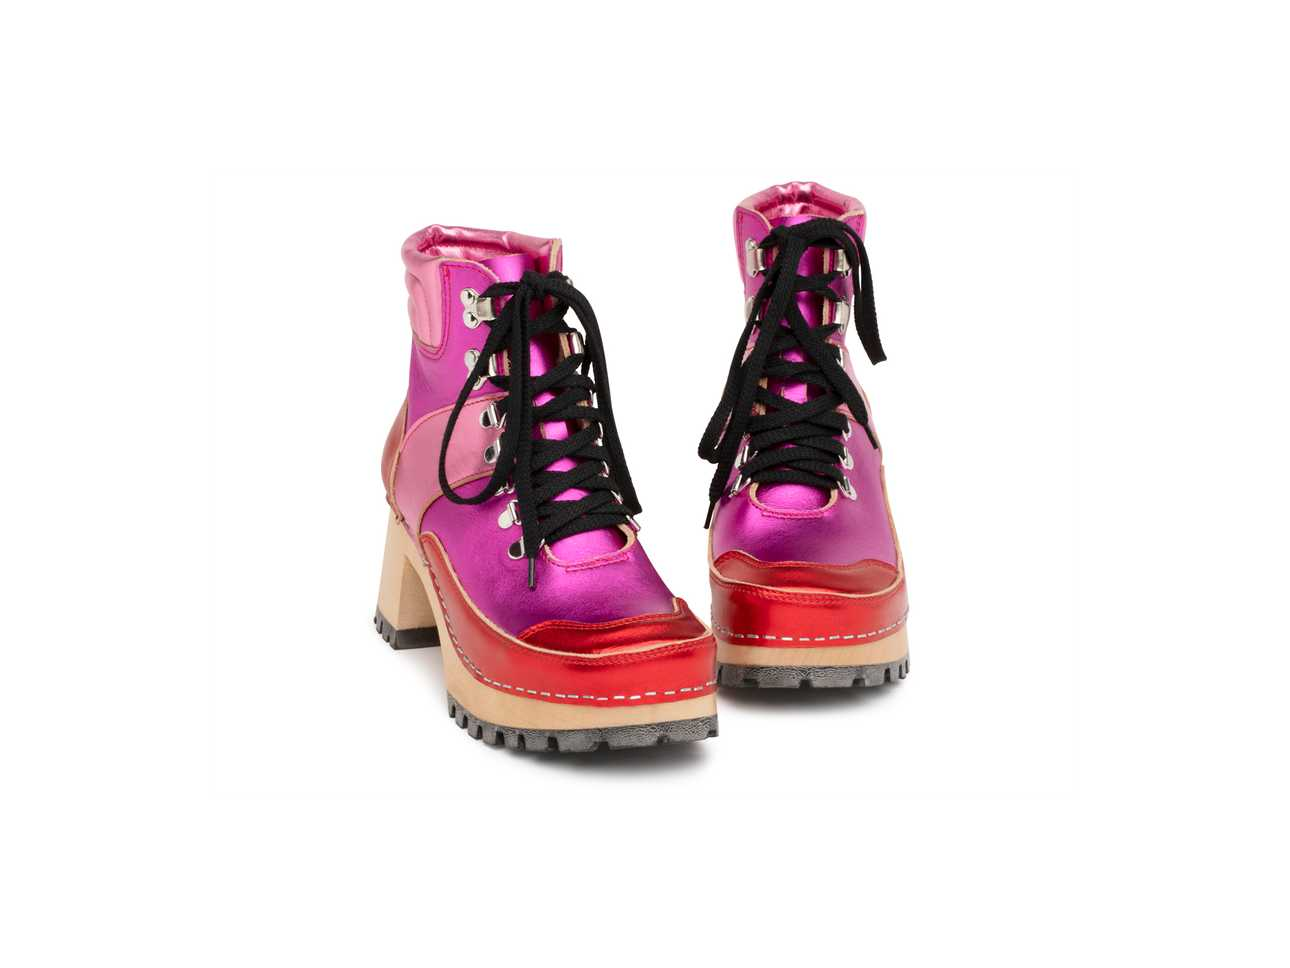 Trail Boot Clog Red/Pink Metallic Combo